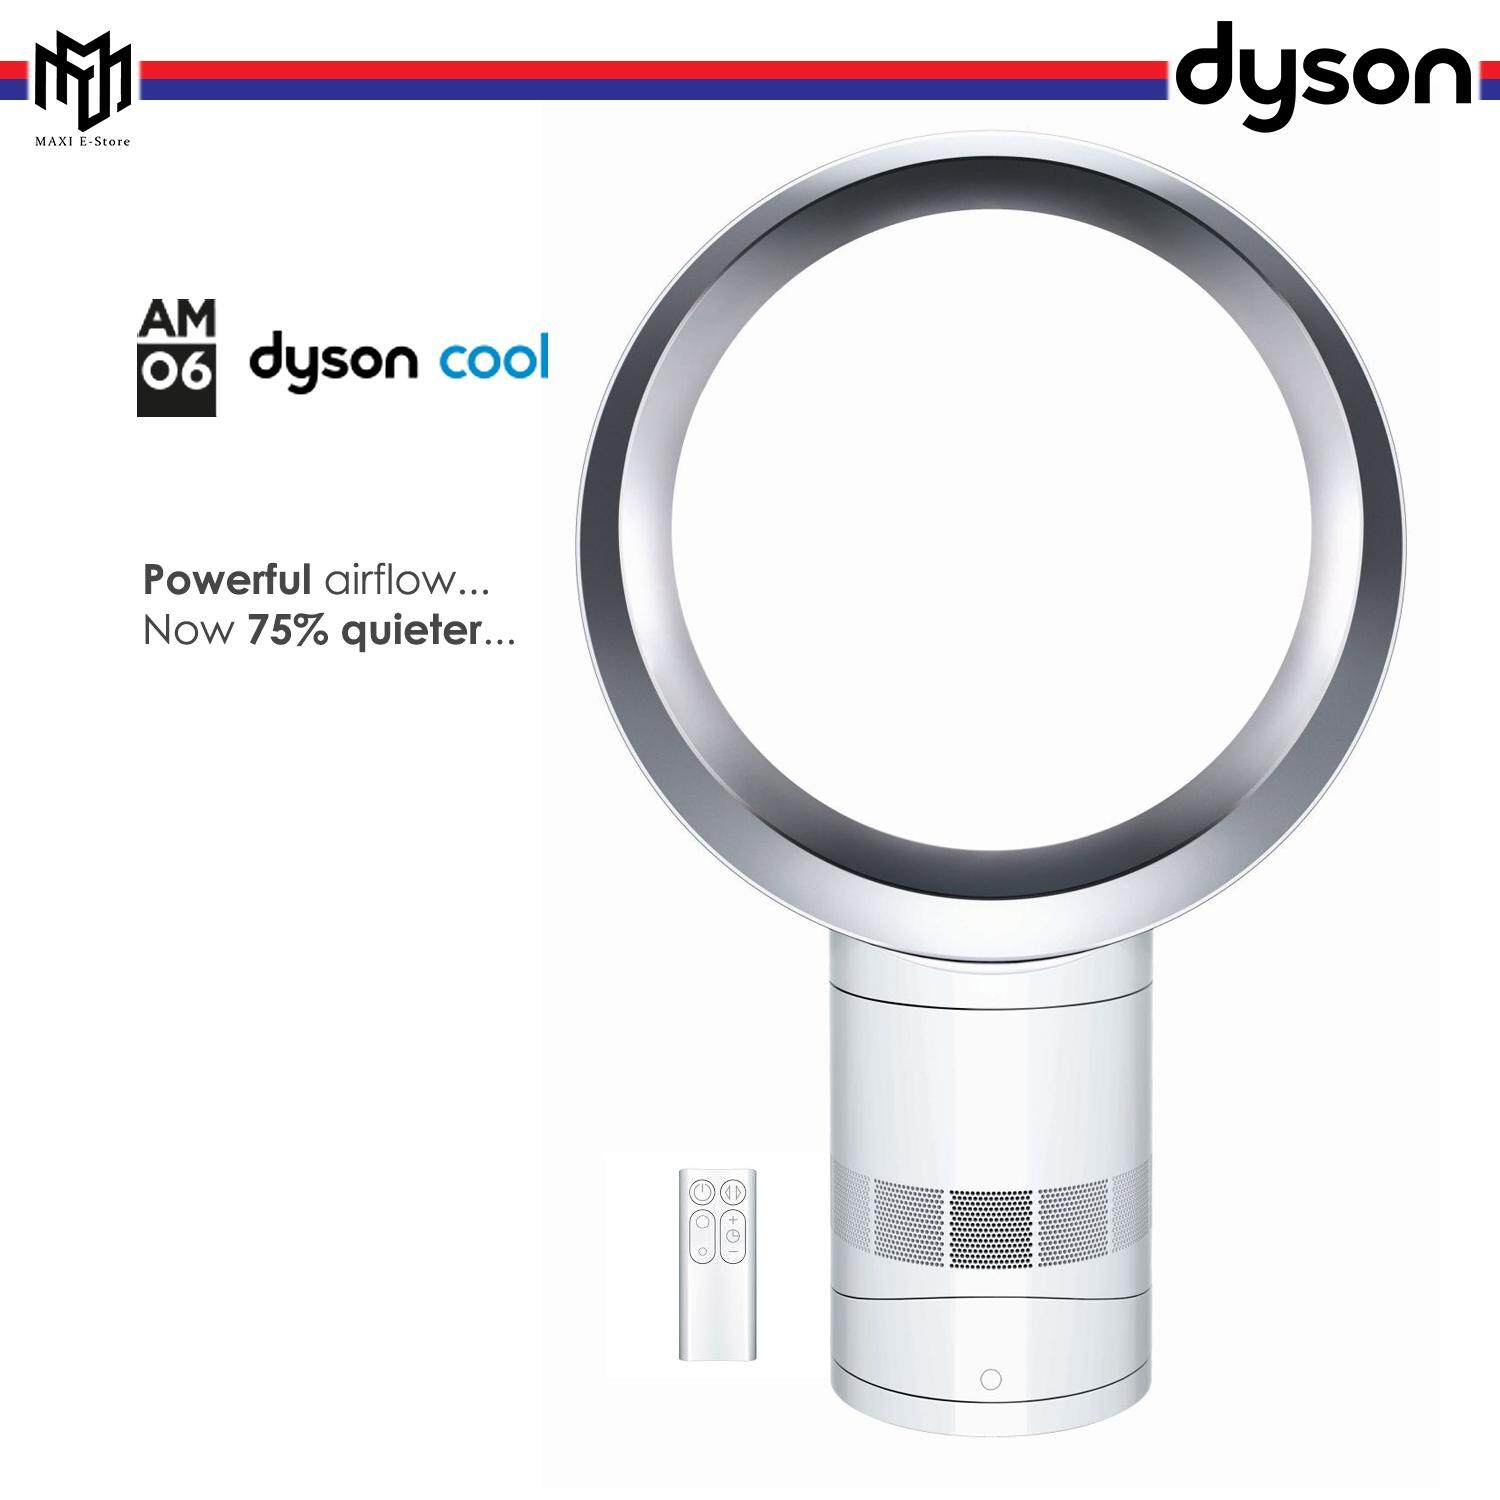 cool fan watch dyson youtube review pedestal